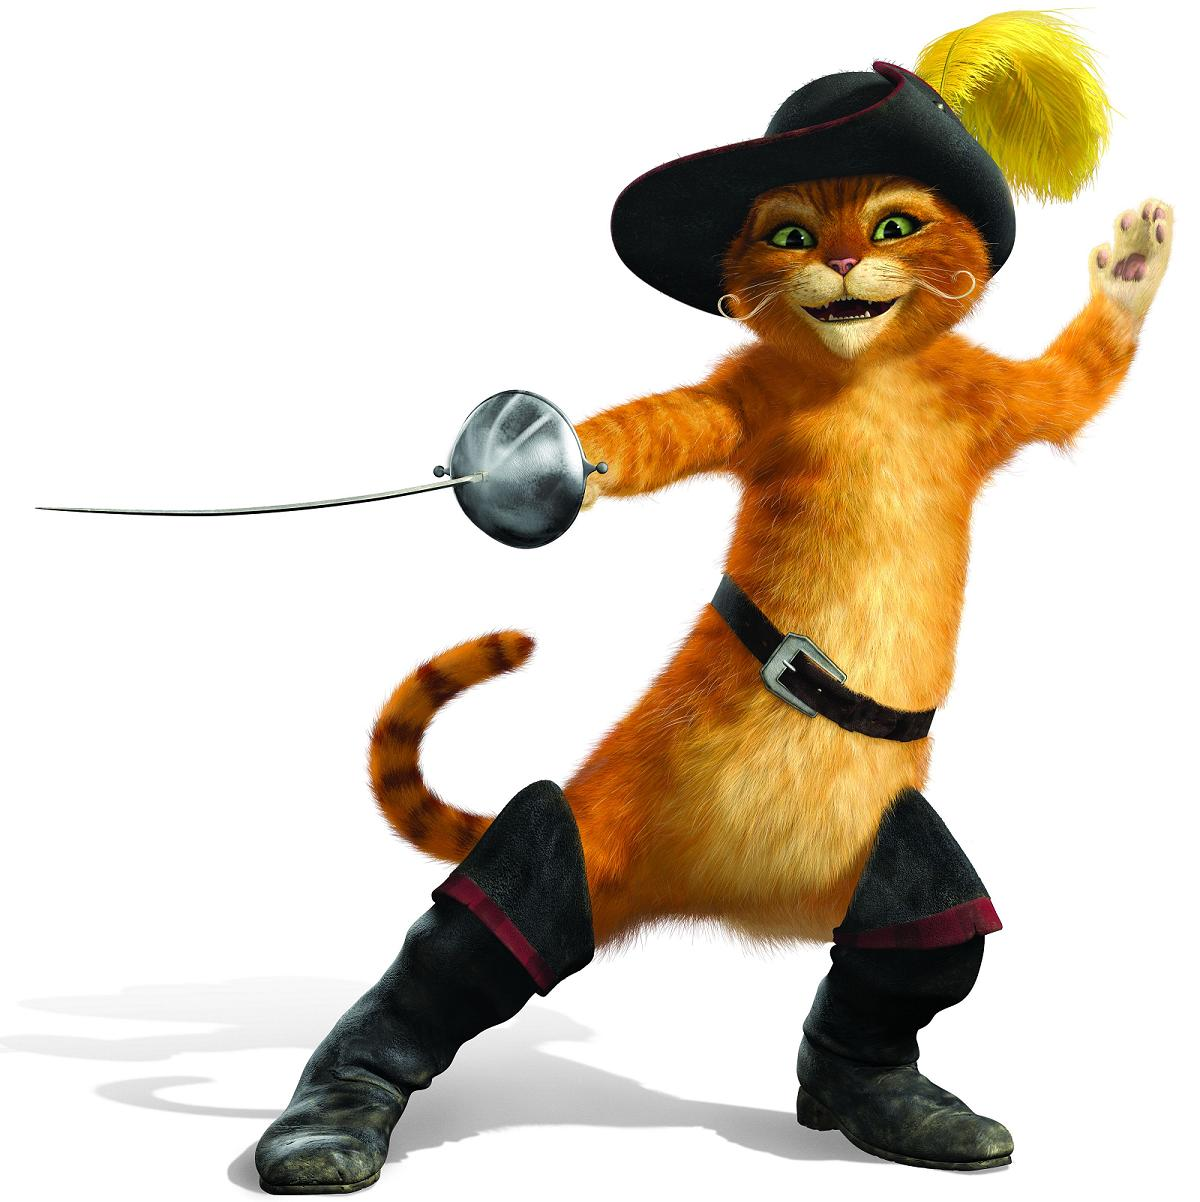 Image of an unknown ninja cat